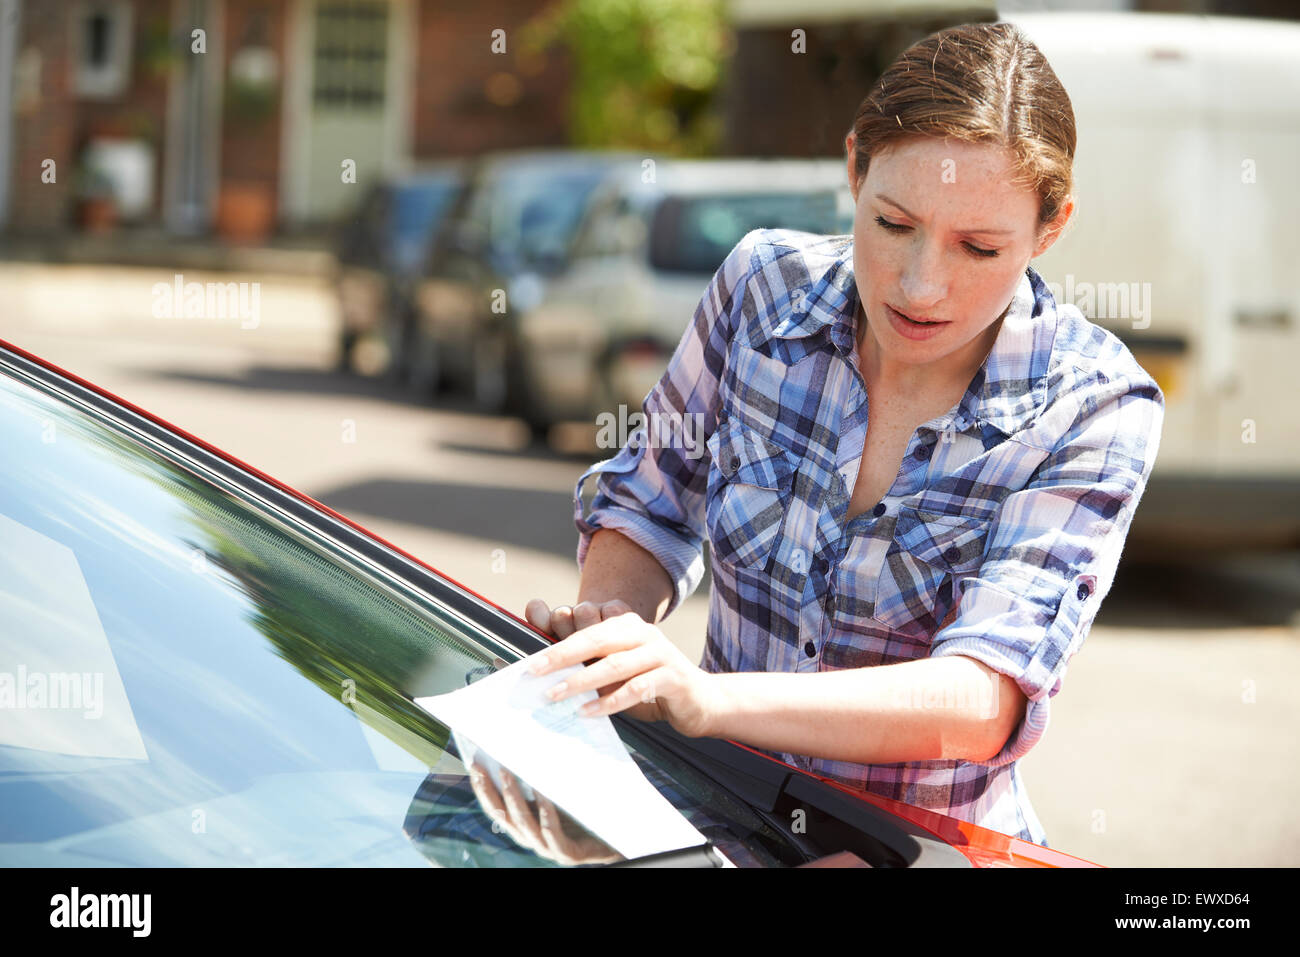 Frustrated Female Motorist Looking At Parking Ticket - Stock Image